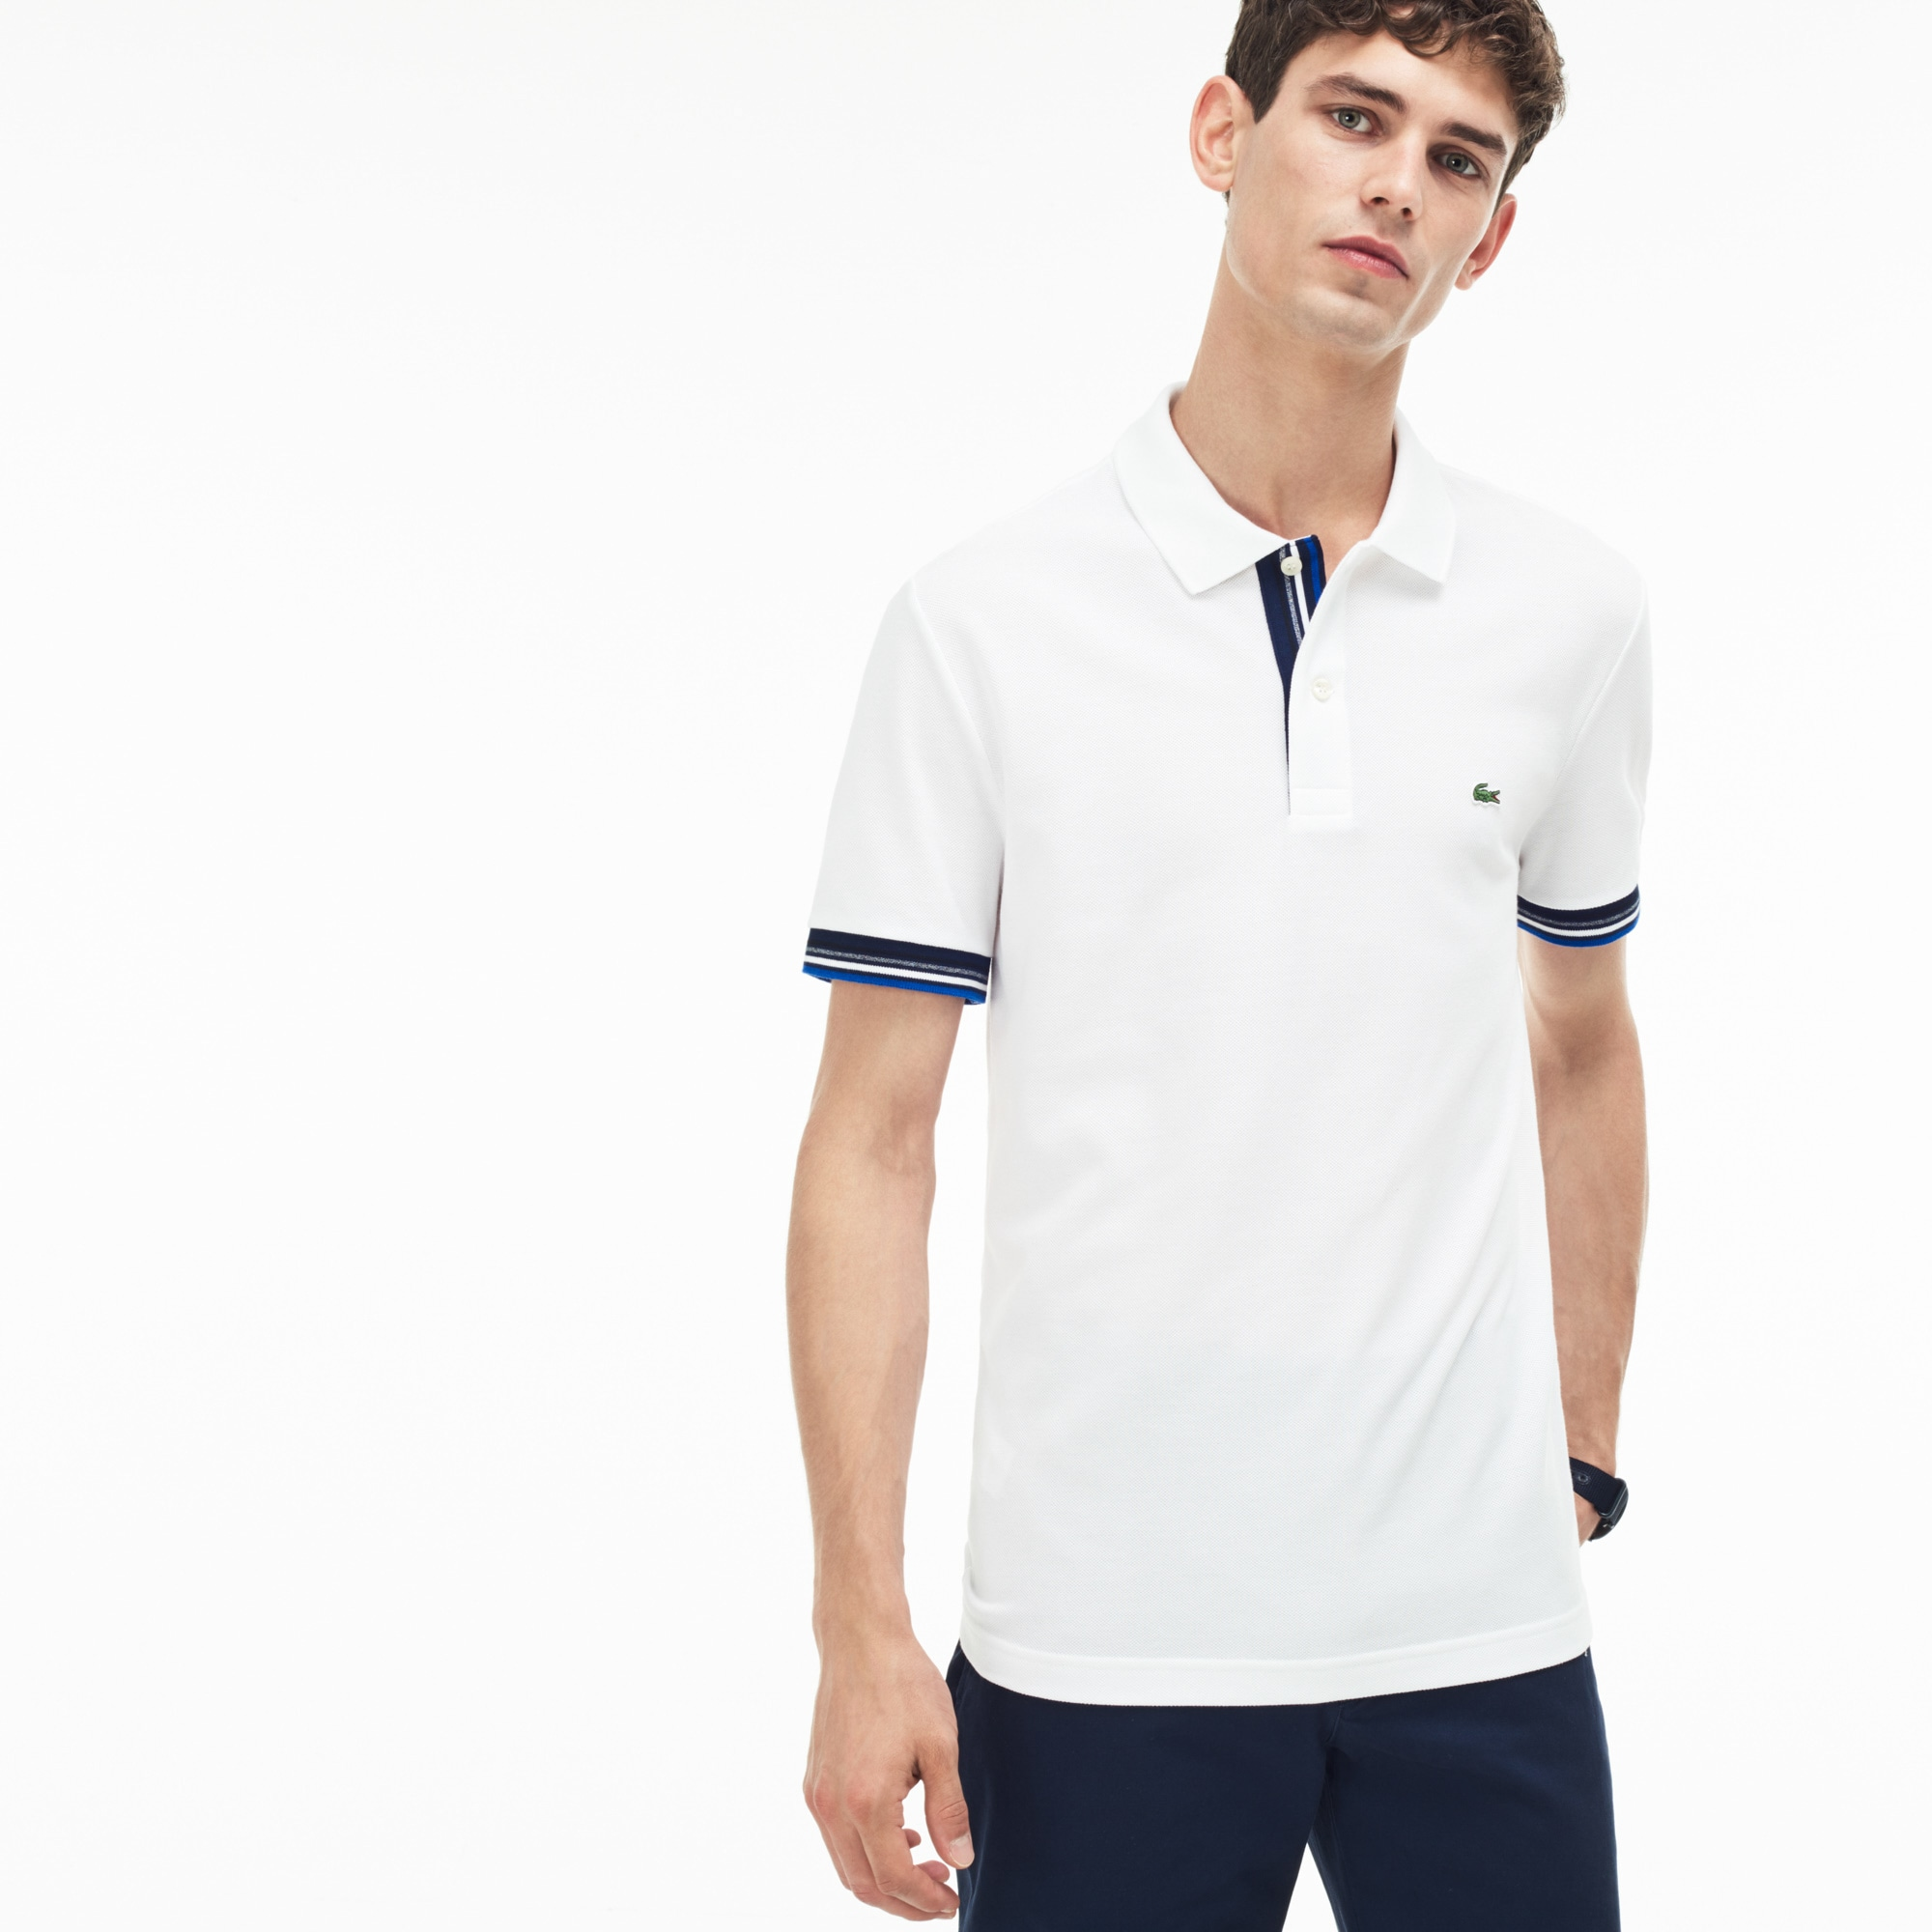 Men's Lacoste Slim Fit Piped Two-Ply Cotton Petit Piqué Polo Shirt